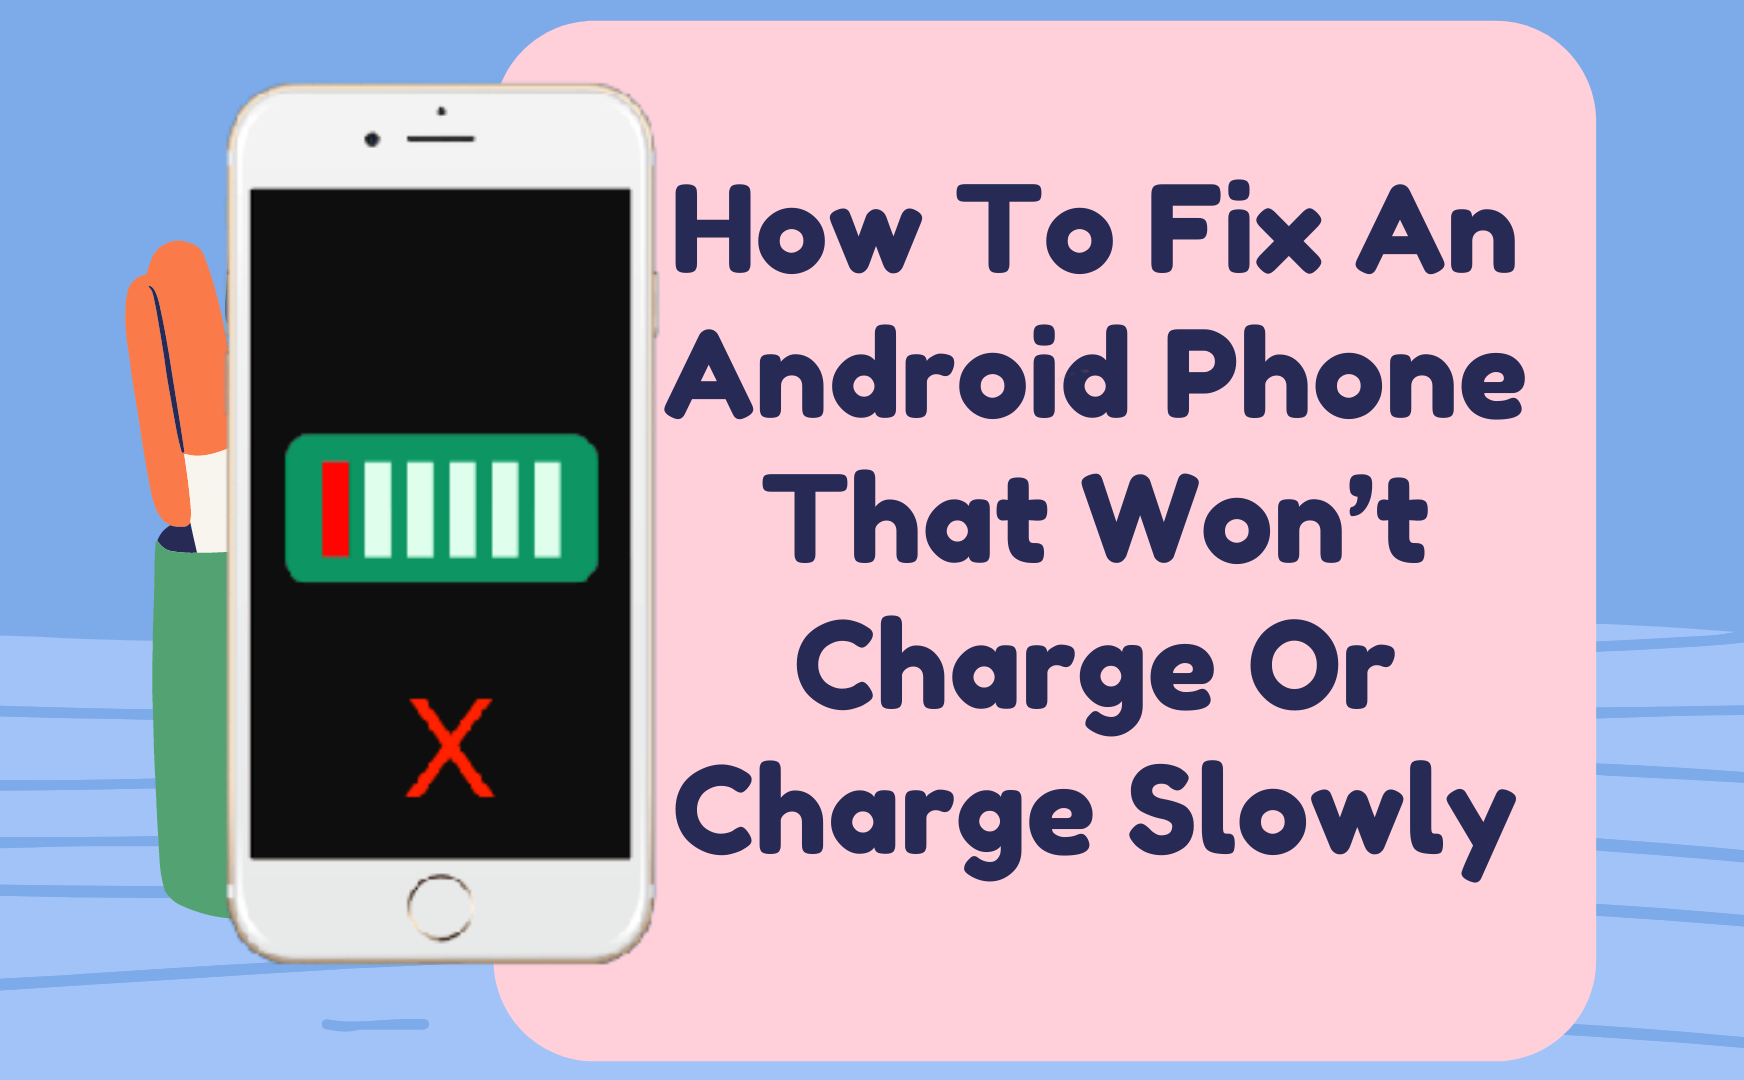 How To Fix An Android Phone That Won't Charge Or Charge Slowly